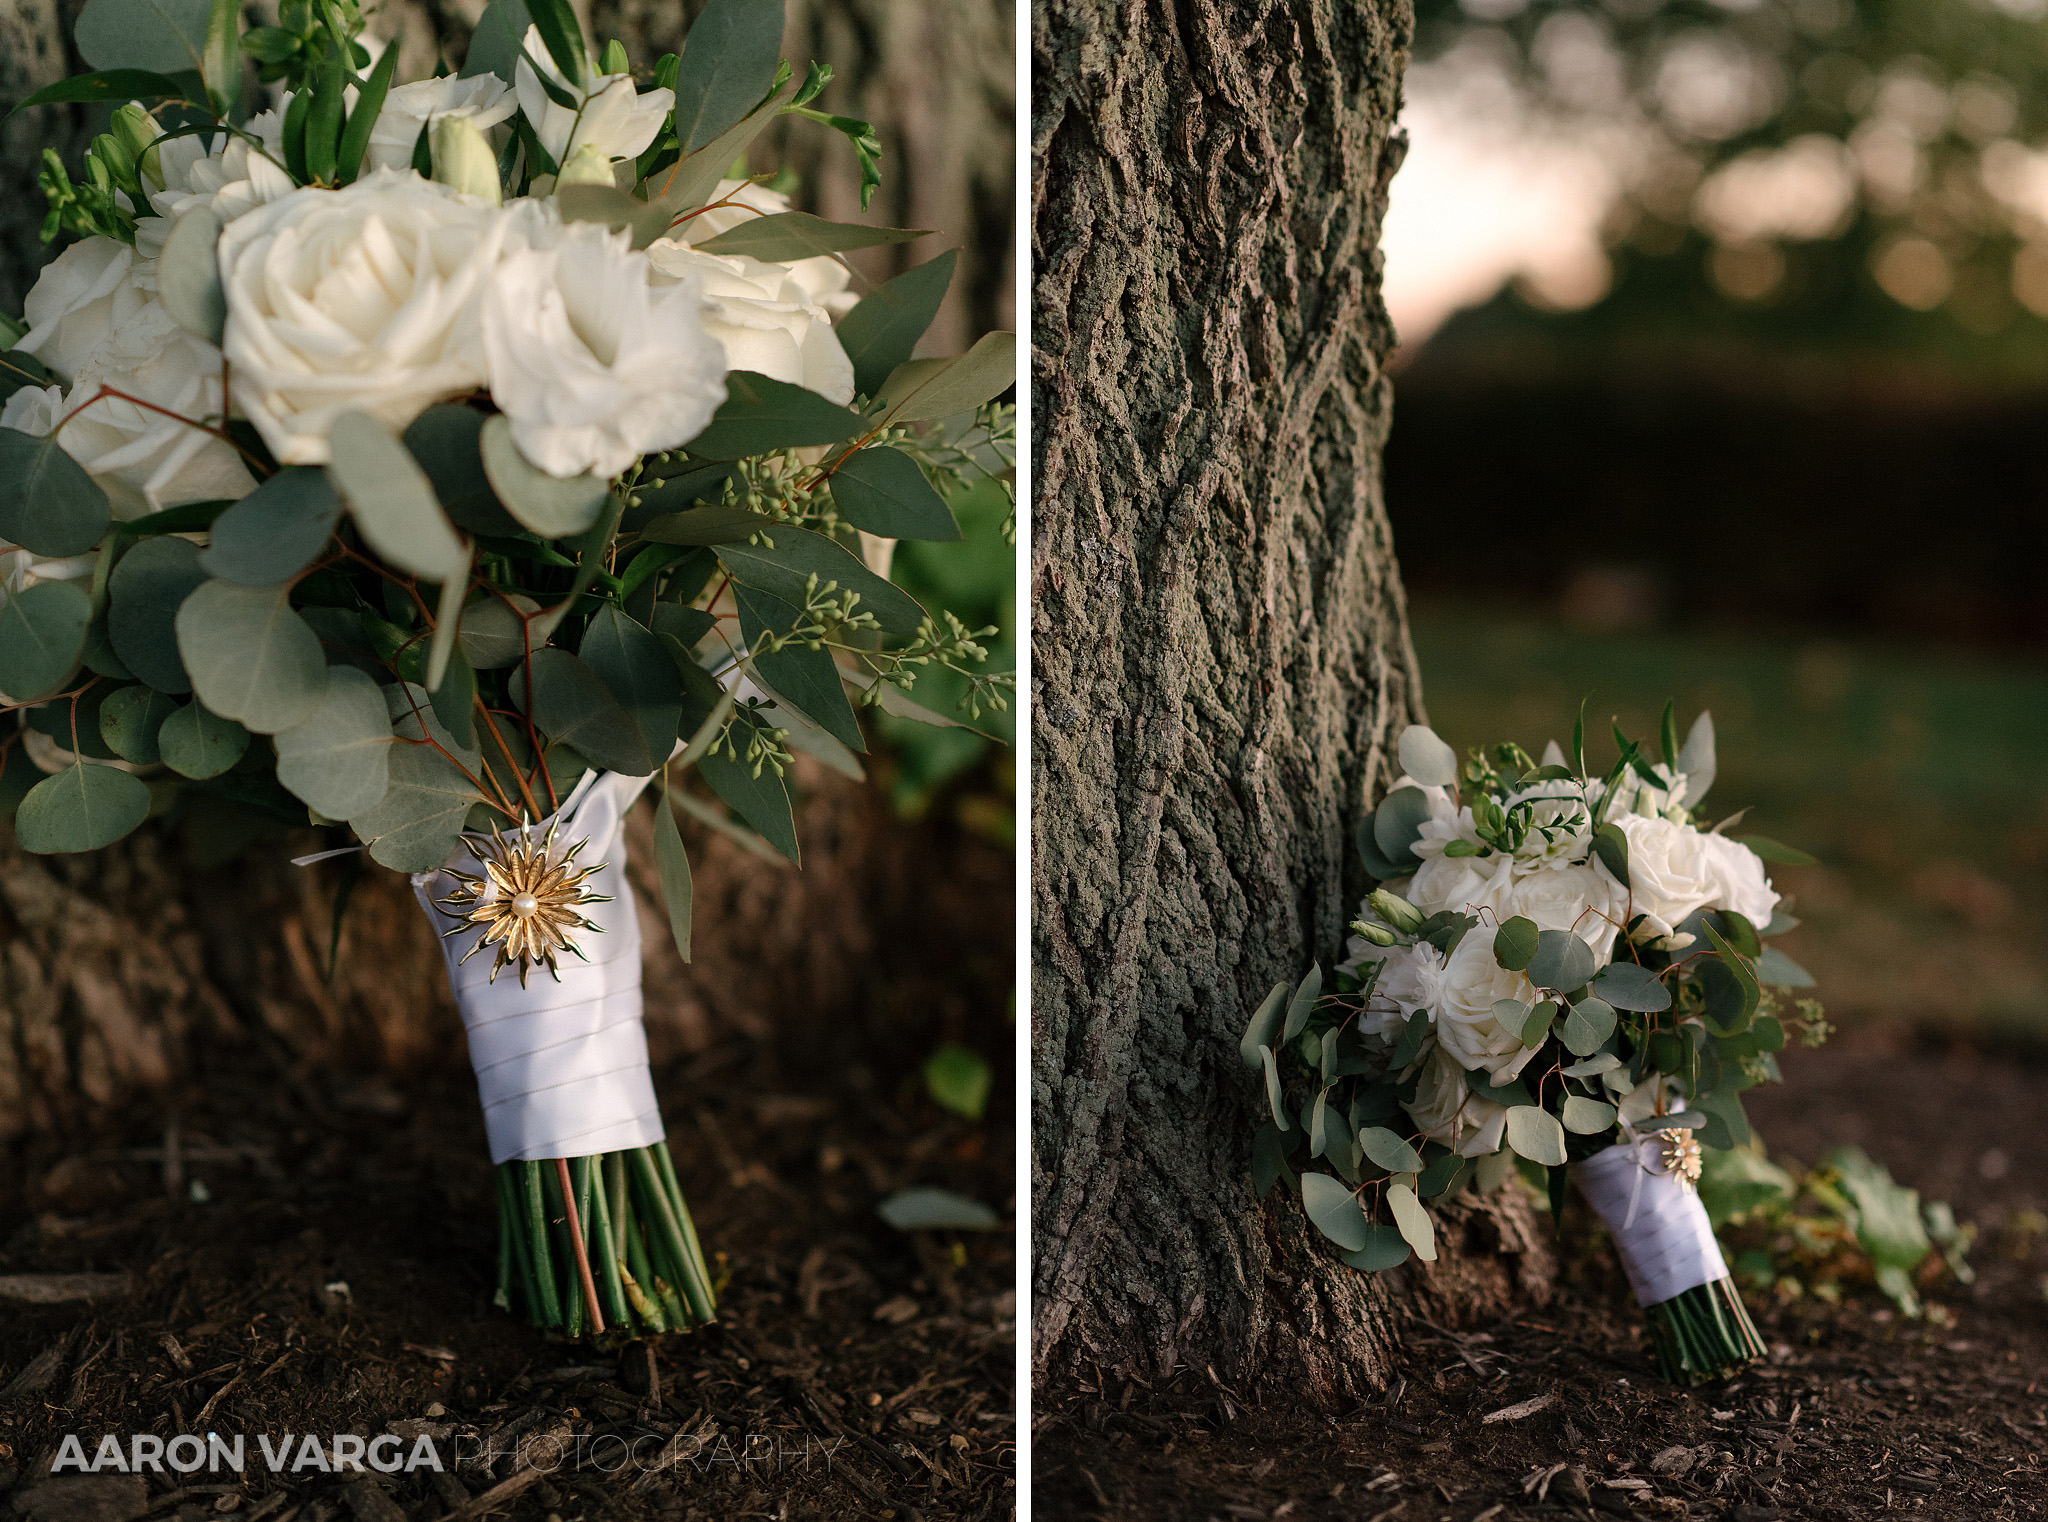 04 montour heights country club wedding flowers - Amy + Bill | Montour Heights Country Club Wedding Photos